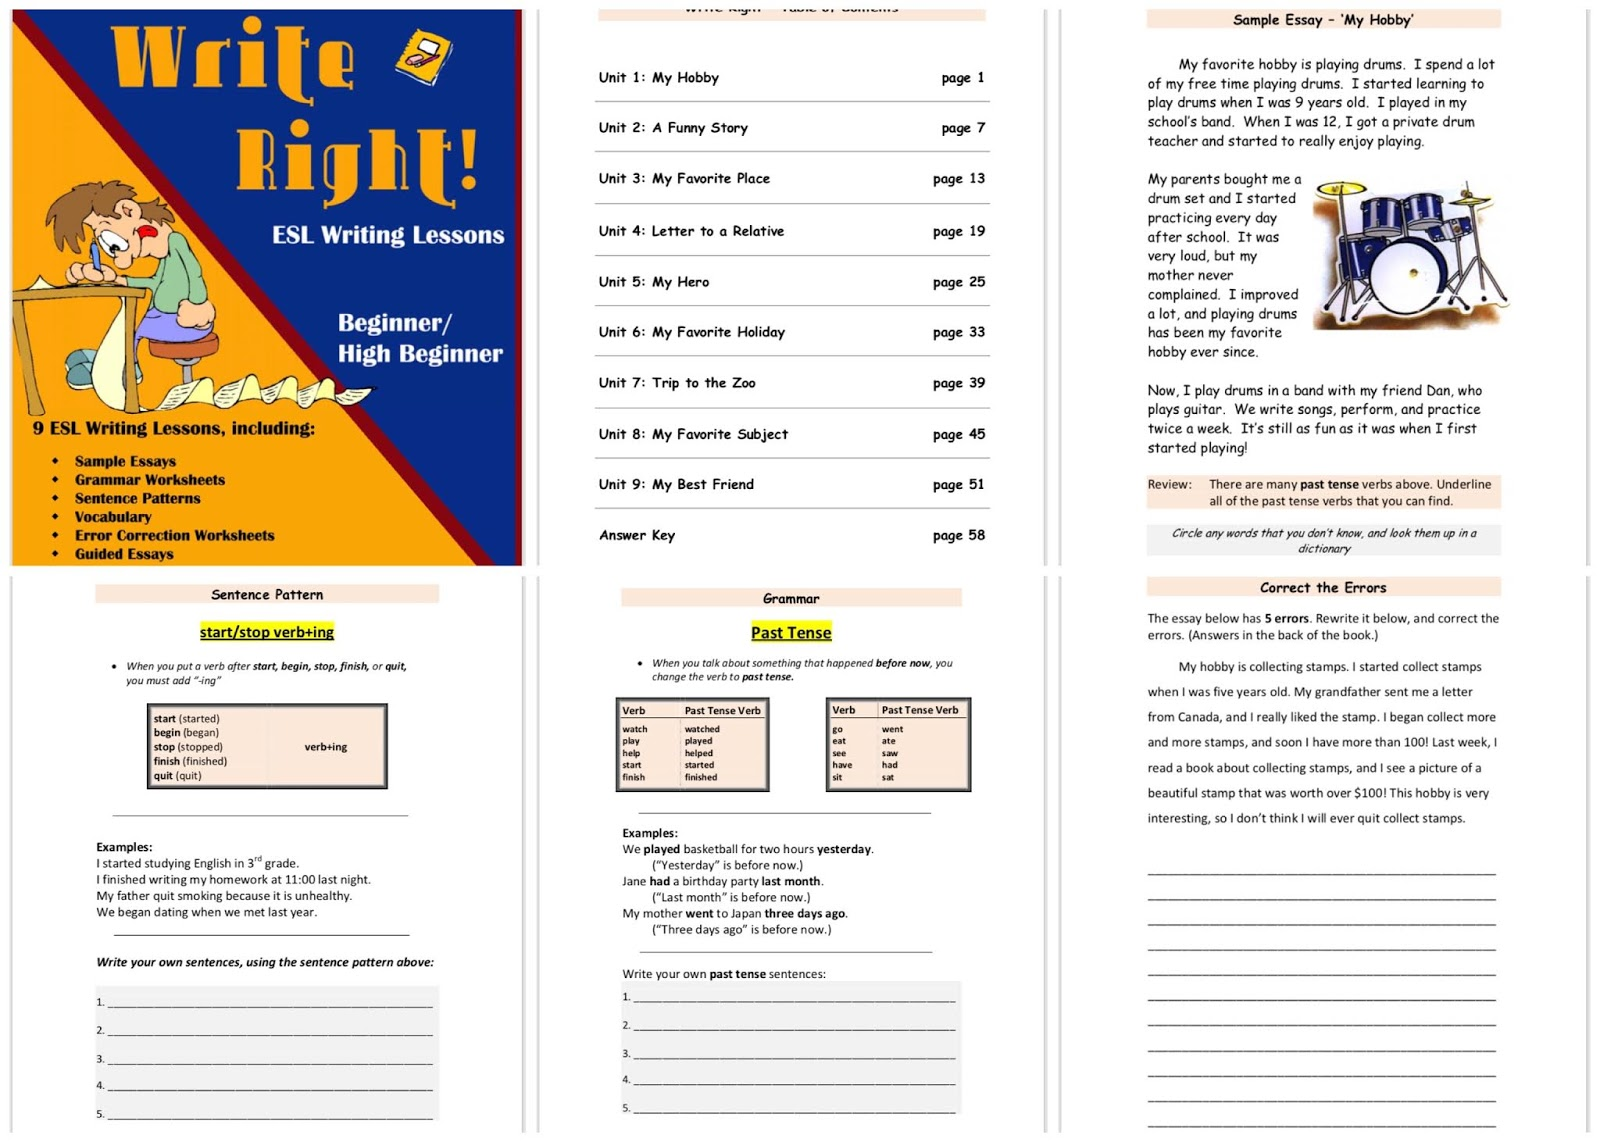 Download Wright Right multi-skills writing book for beginner